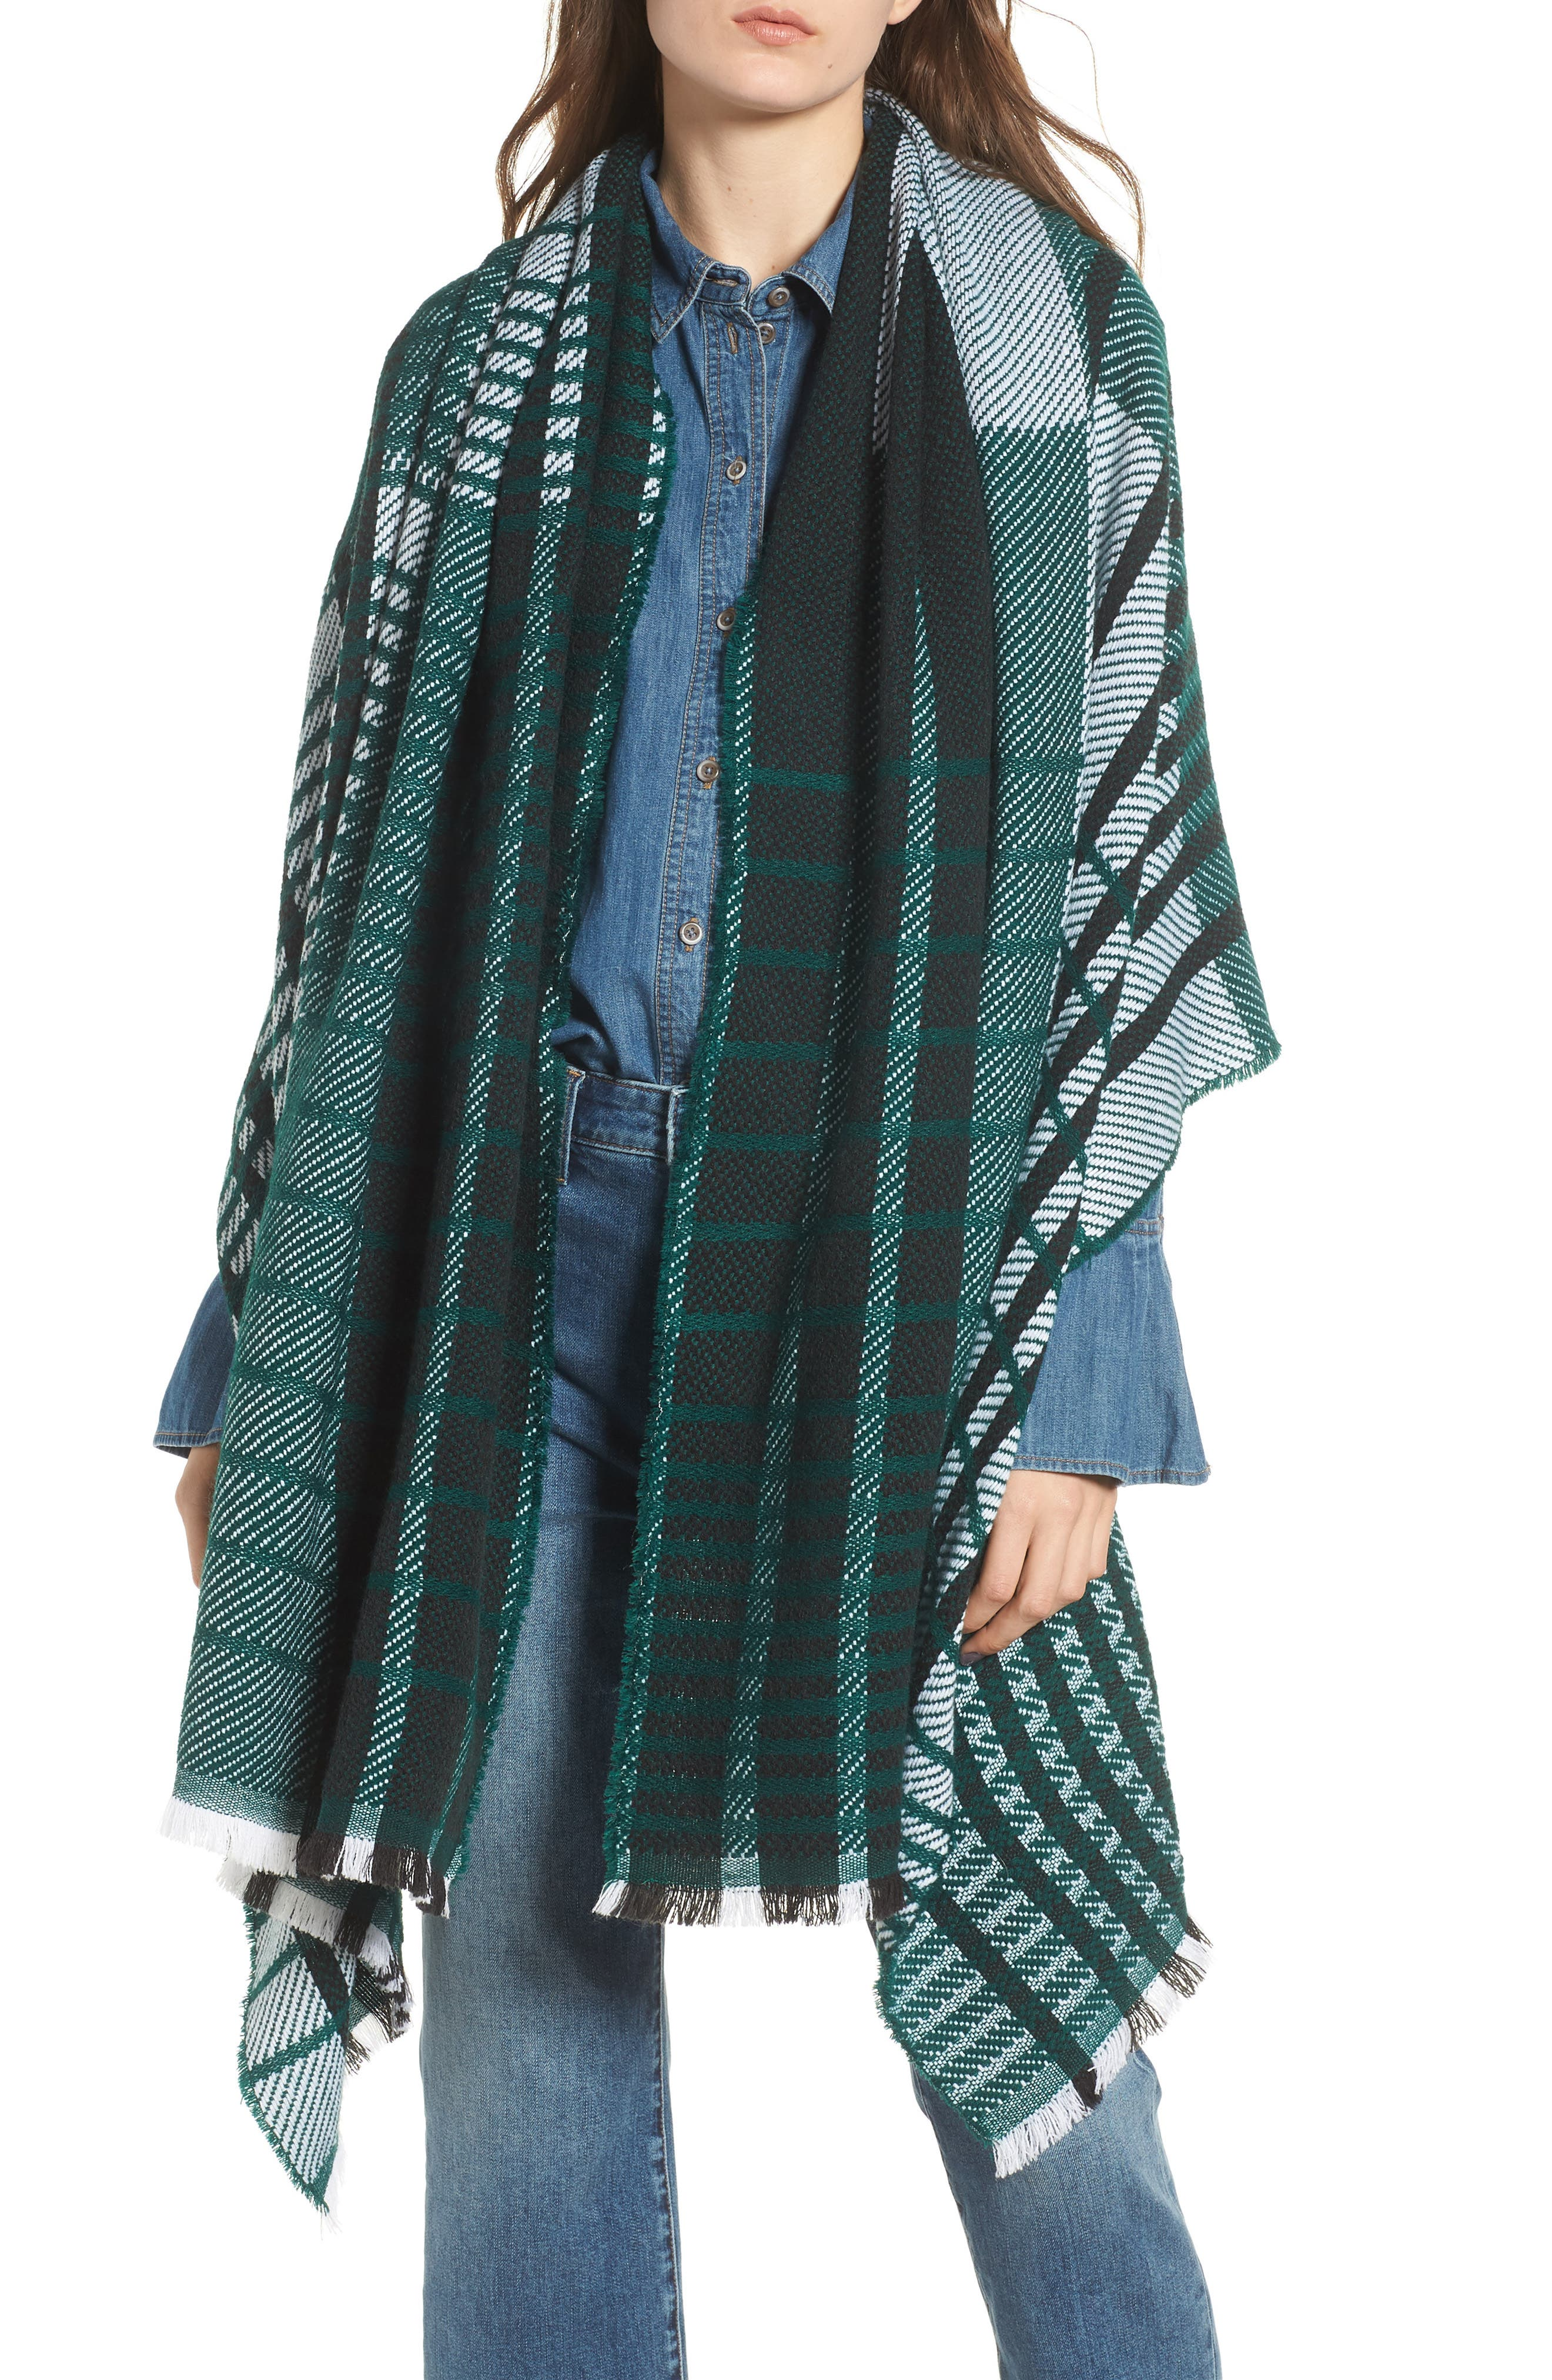 Plaid Blanket Wrap,                         Main,                         color, Green Combo